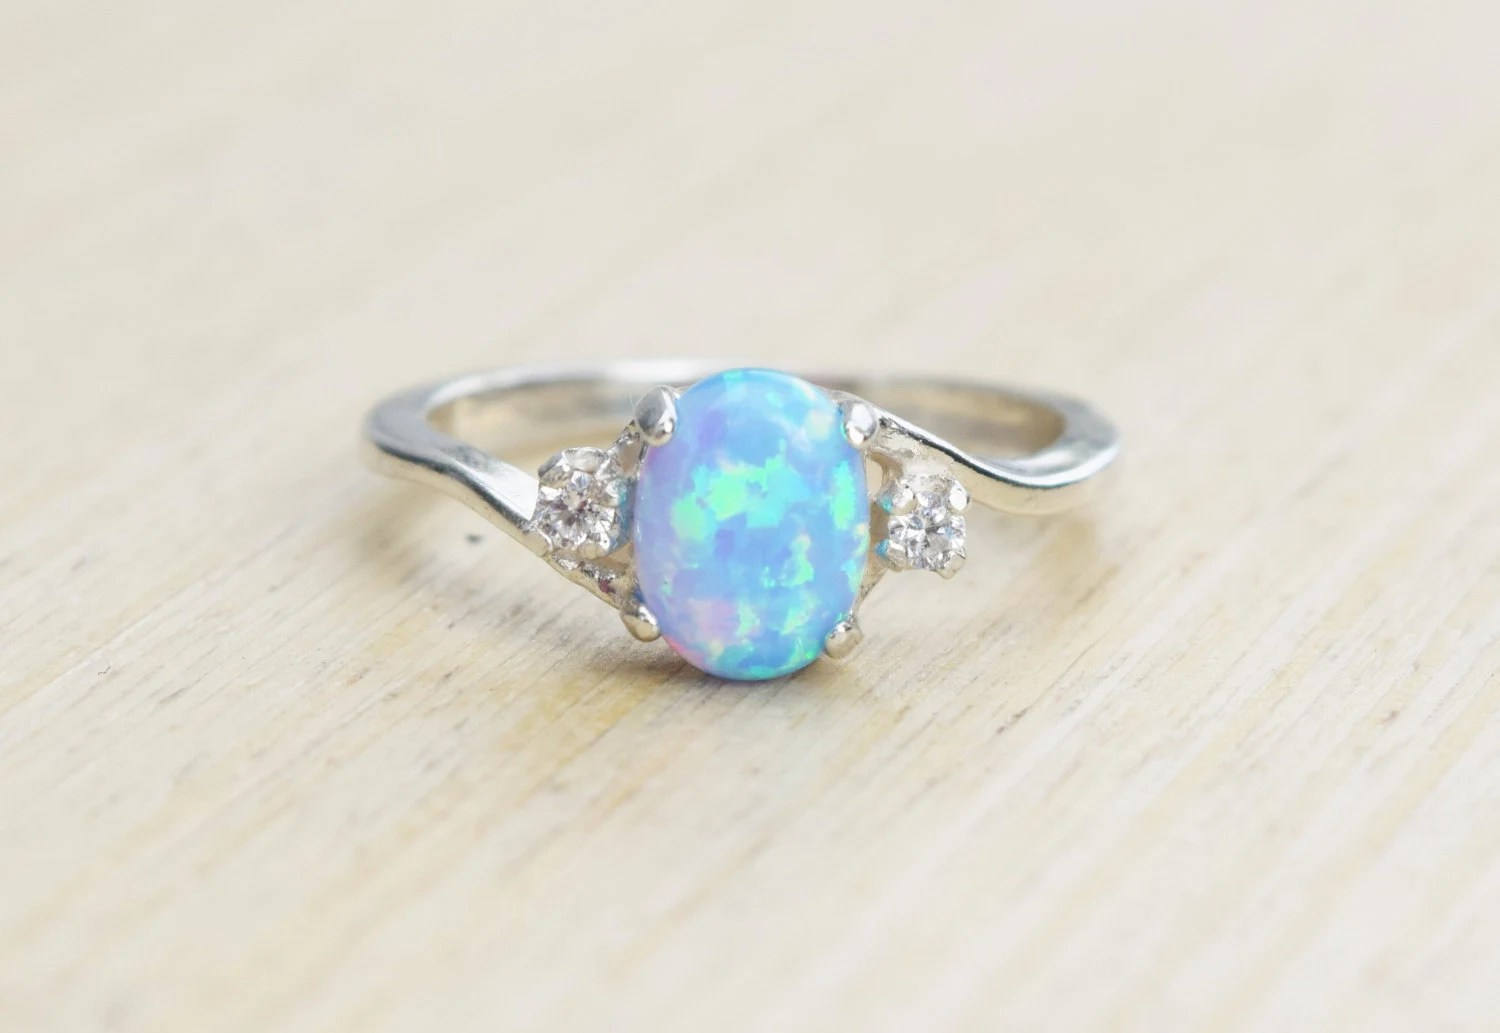 opal wedding ring opal wedding ring sets Silver Lab Opal Ring Blue Opal Ring Light Blue Opal Ring Opal Engagement Ring Promise Ring Anniversary Gift For Her October Birthstone